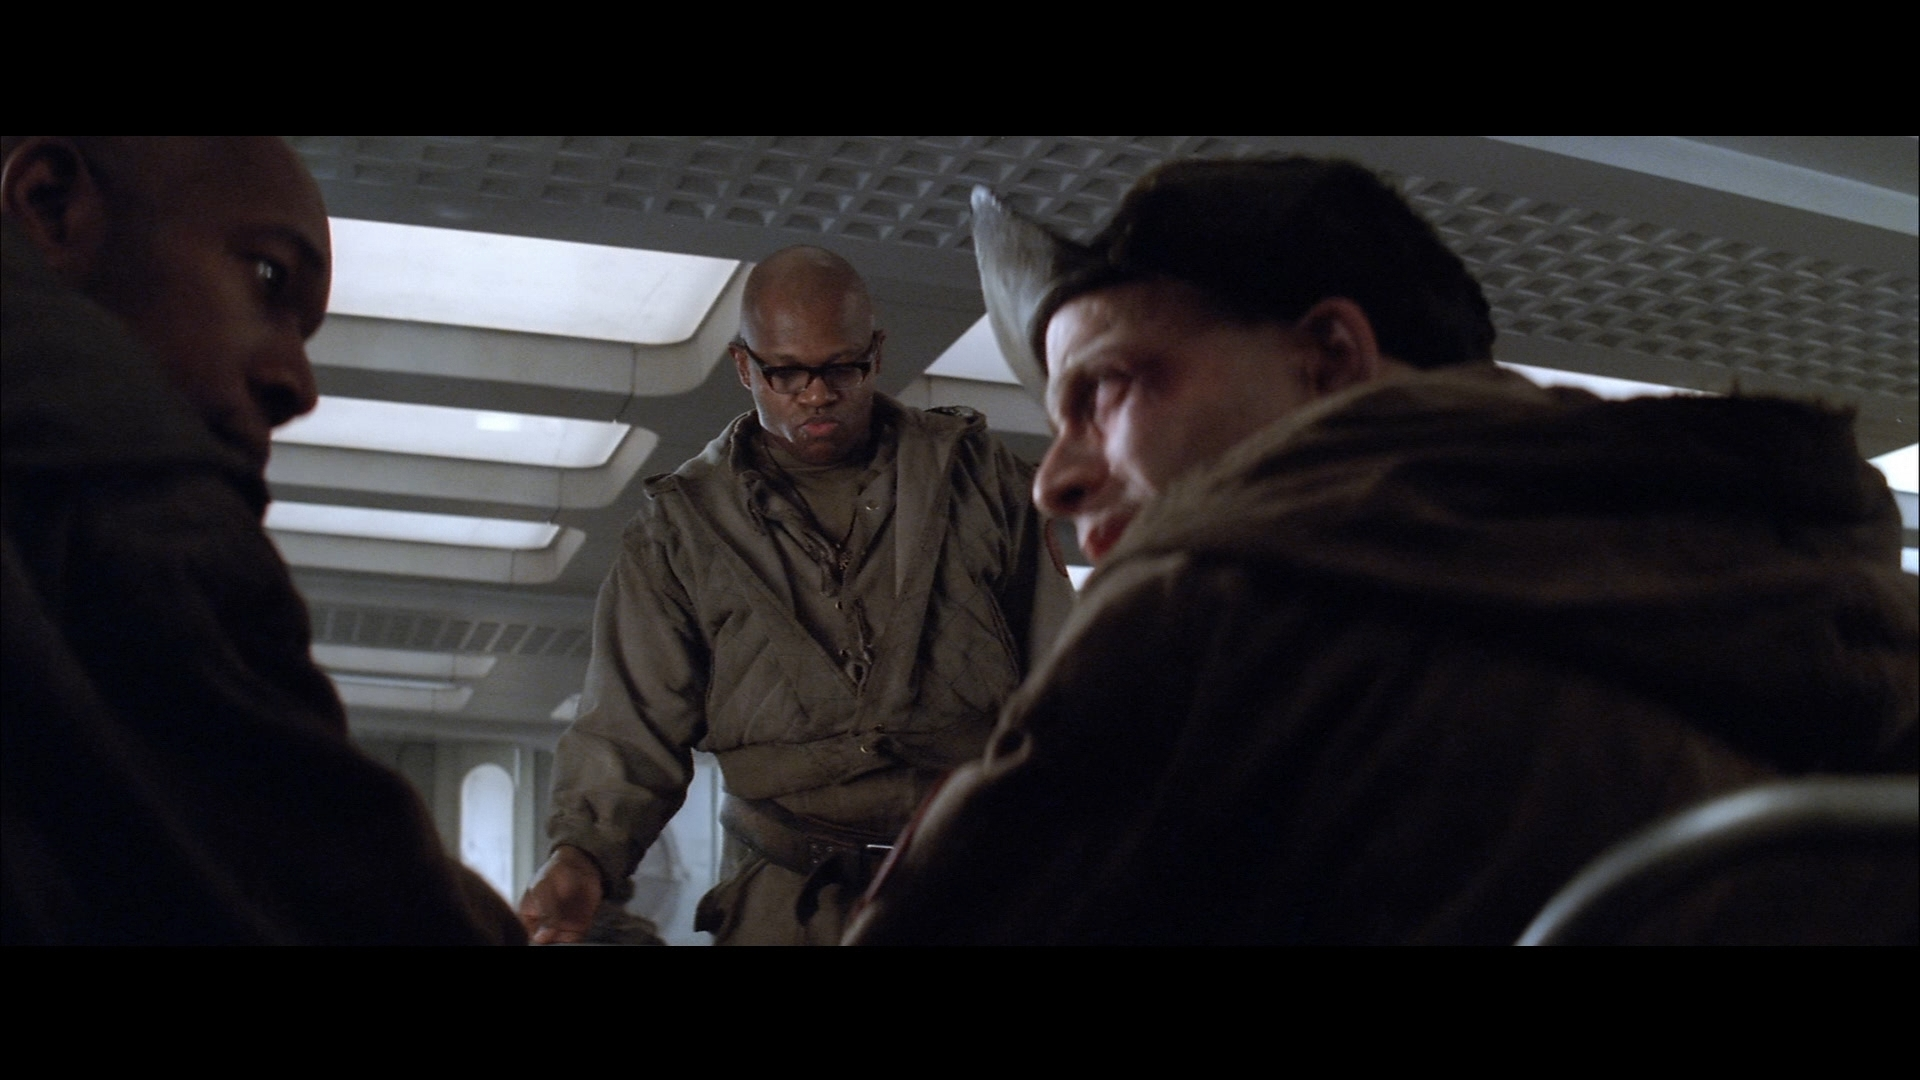 ALIEN3 (1992) - Dillon's (Charles S. Dutton) Complete Costume - Image 13 of 17